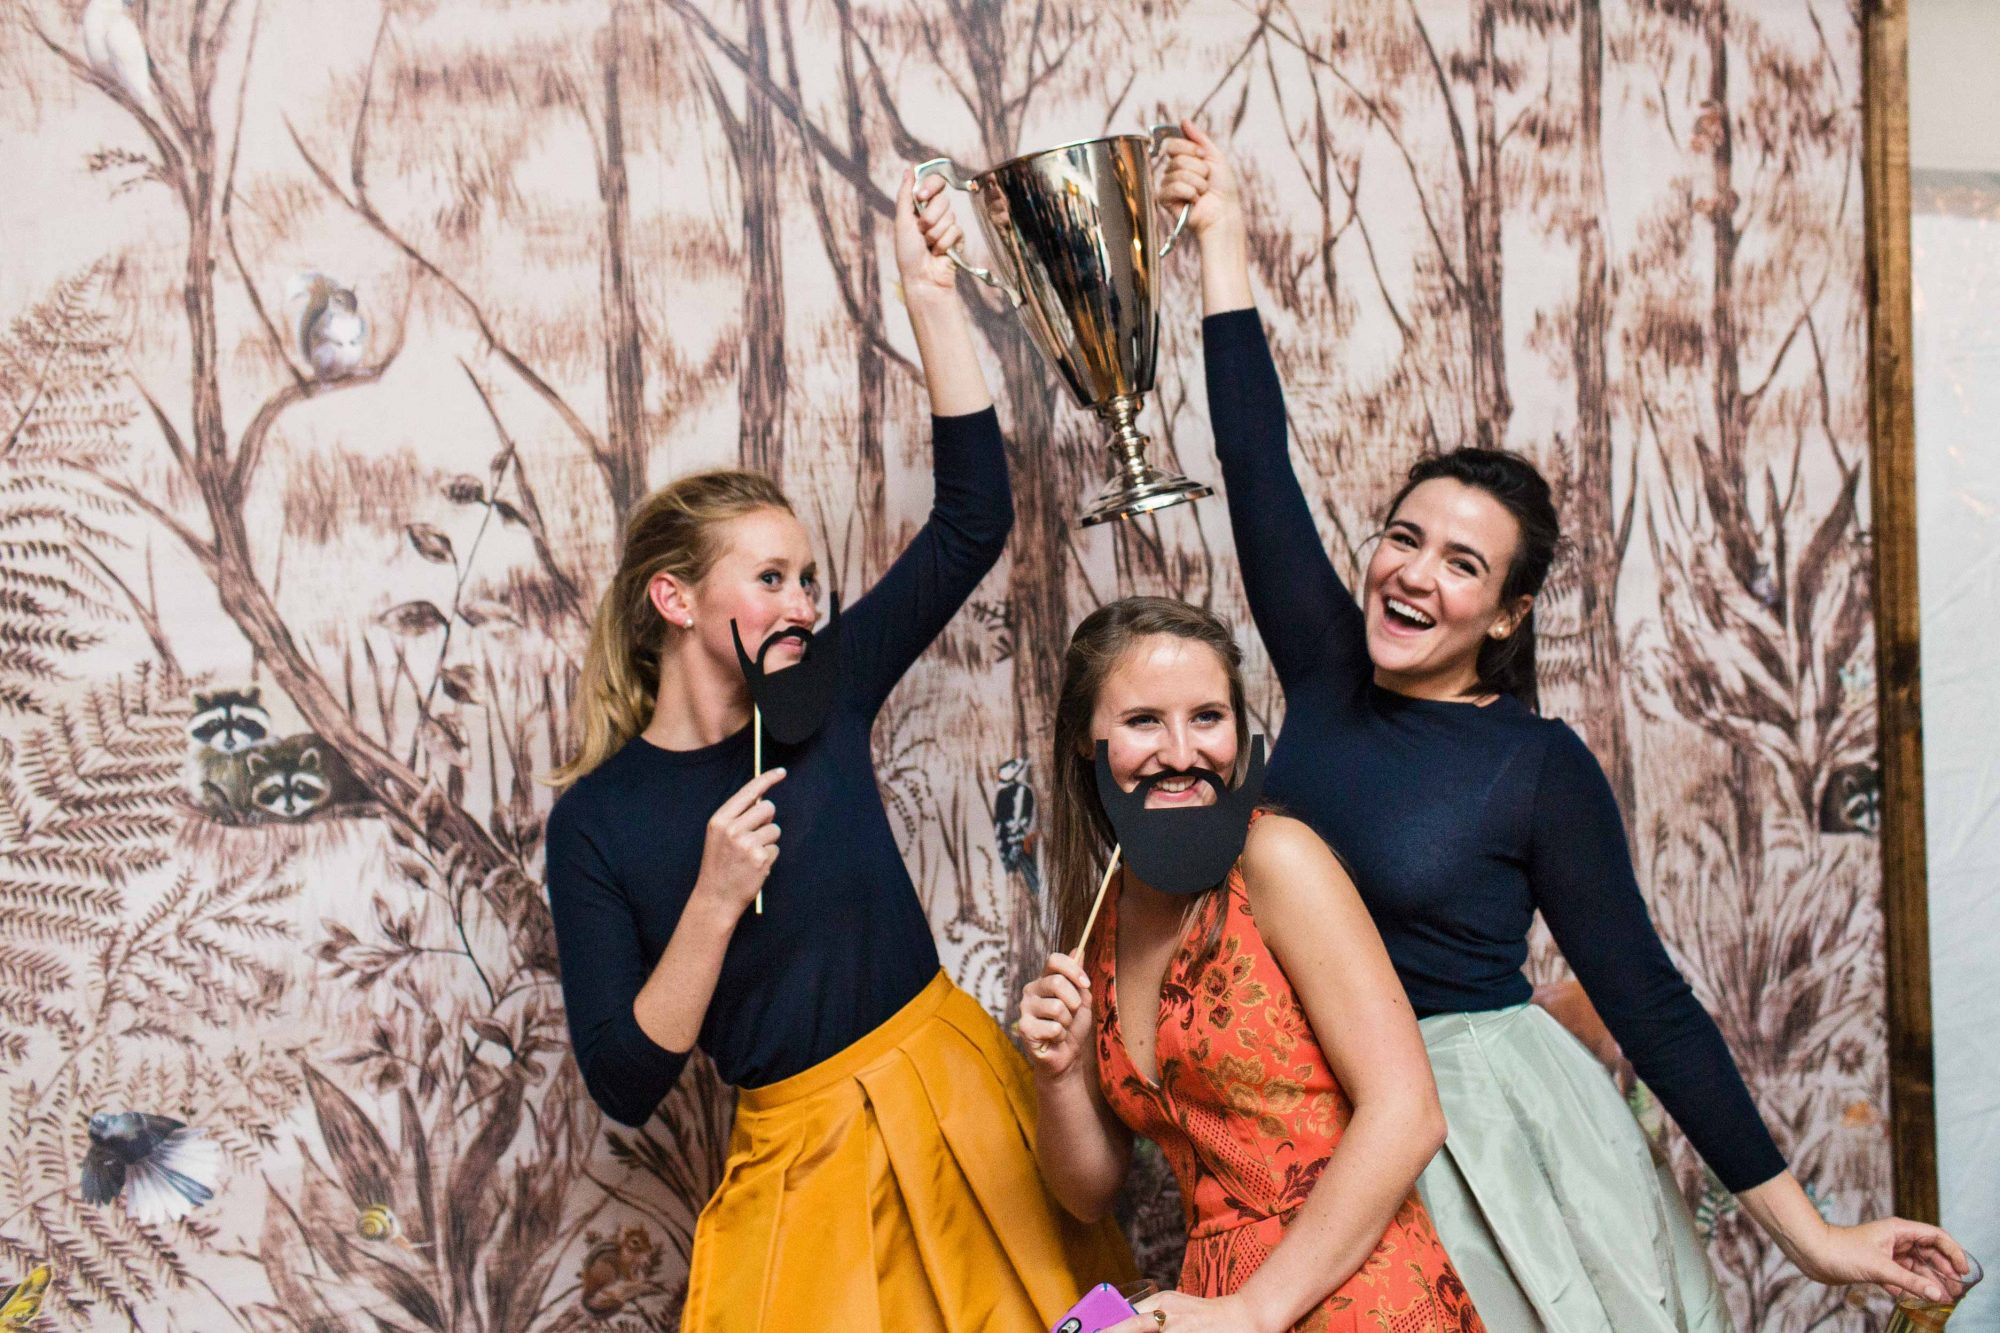 Guests photo booth